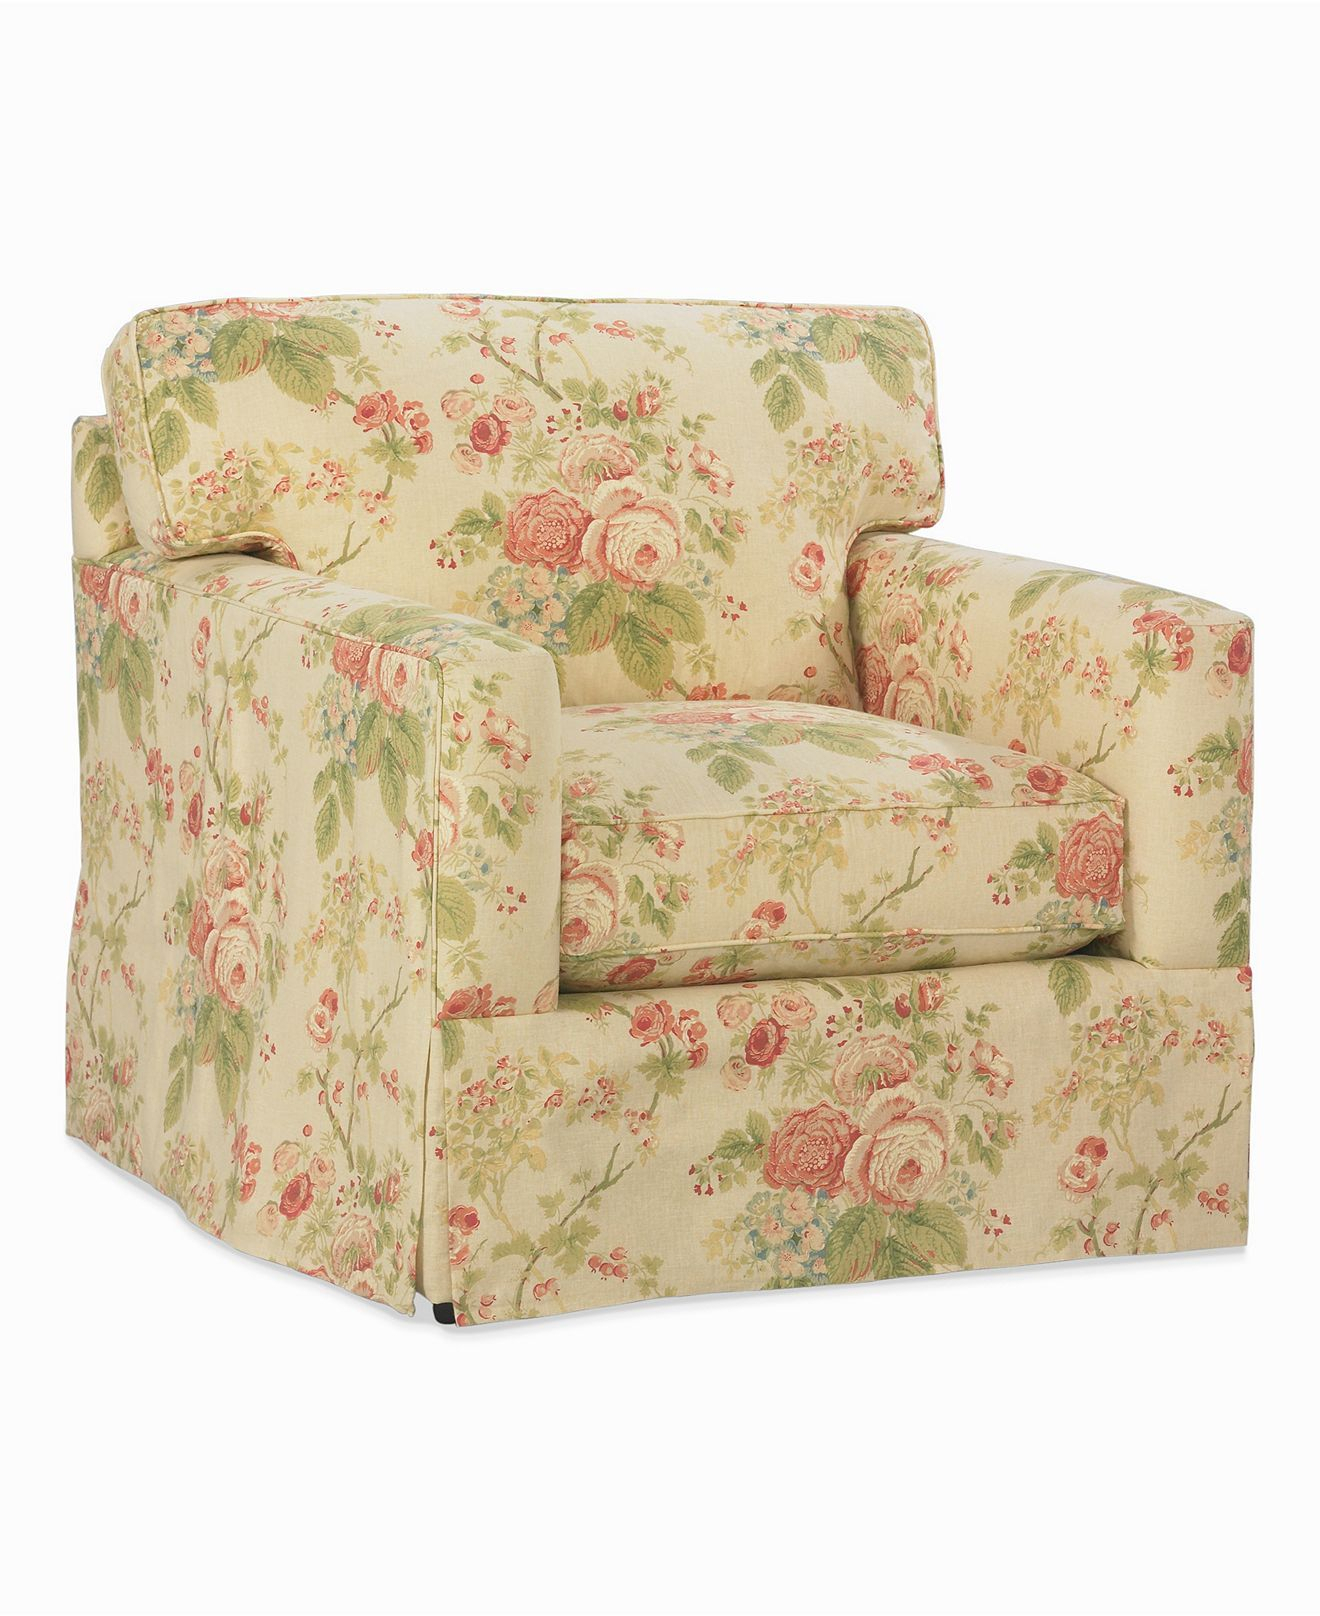 Chintz Arm Chair | Living Room Chairs, Chair, Furniture Inside Chintz Sofas And Chairs (View 14 of 15)